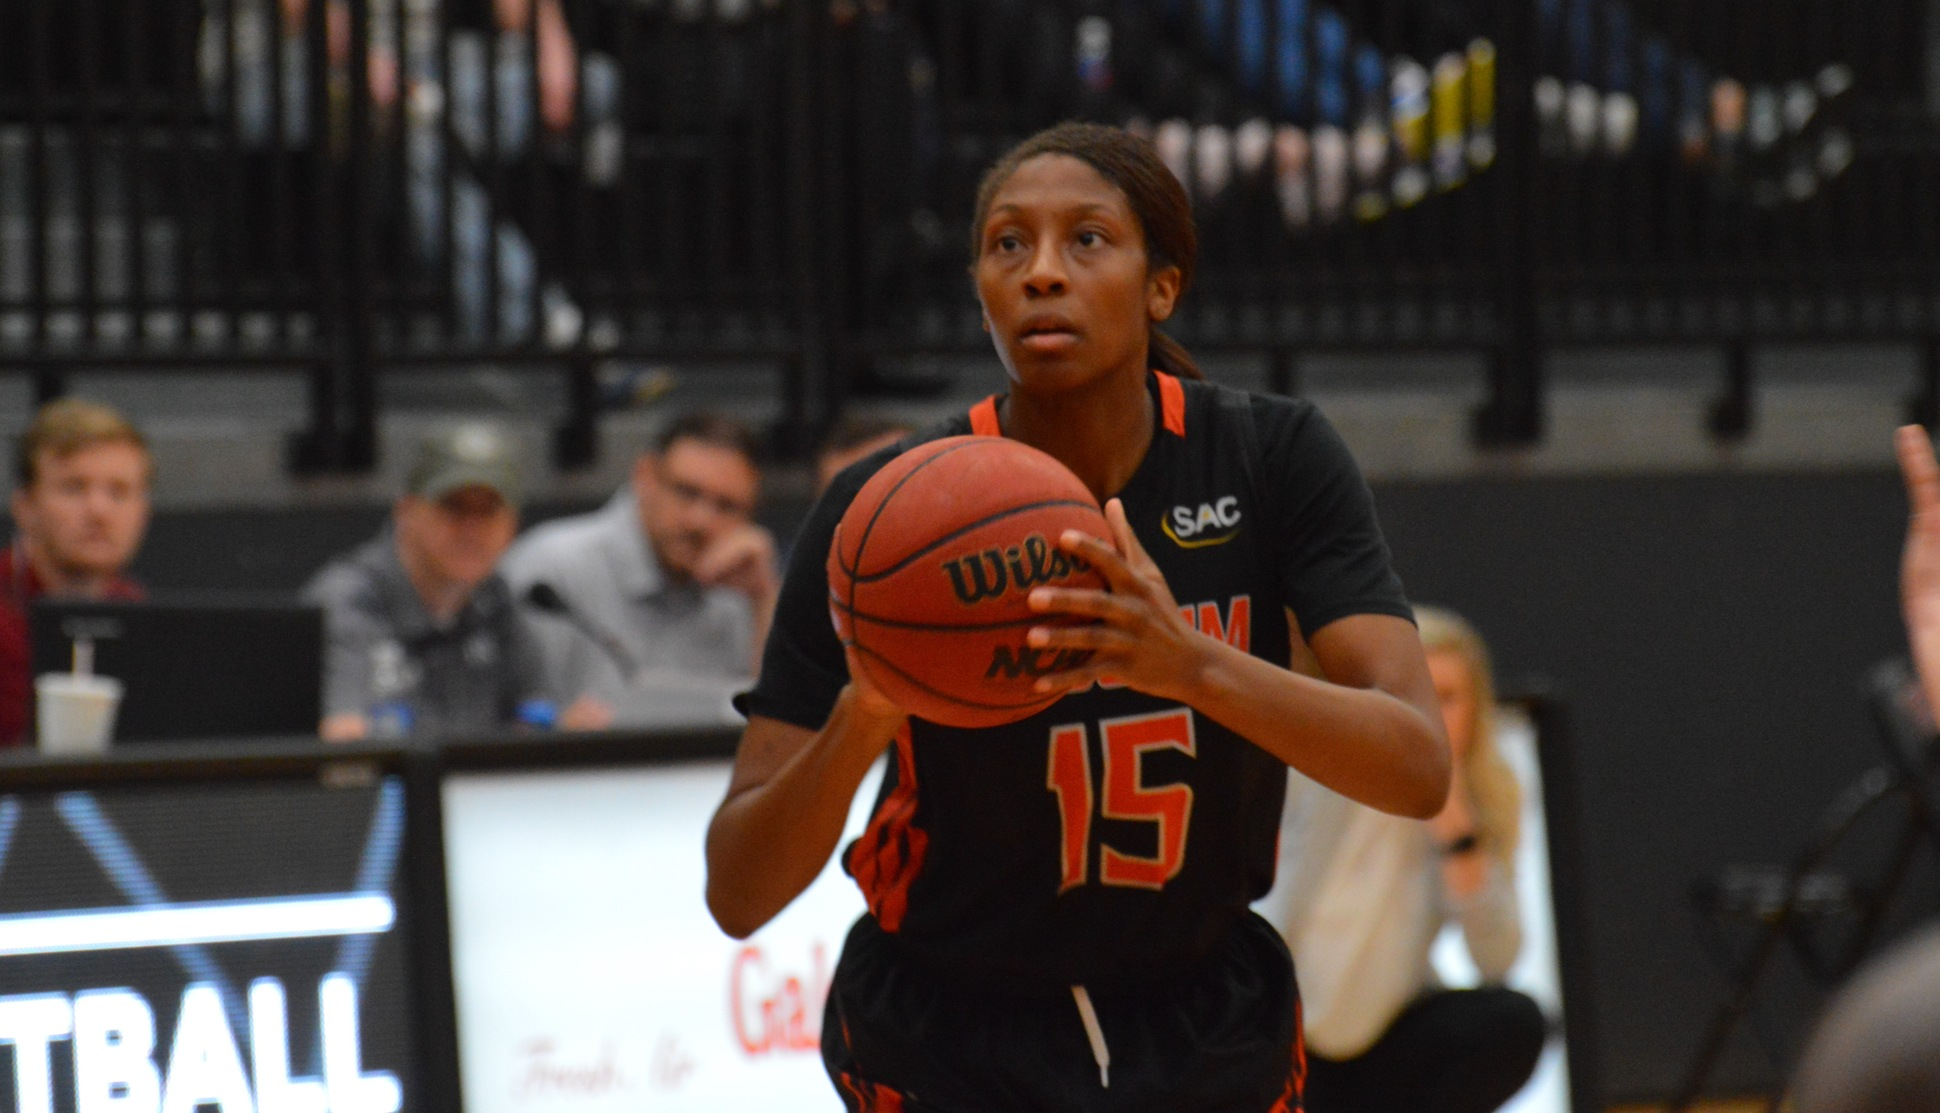 Pioneers hit 12 threes in 66-45 win at Lenoir-Rhyne